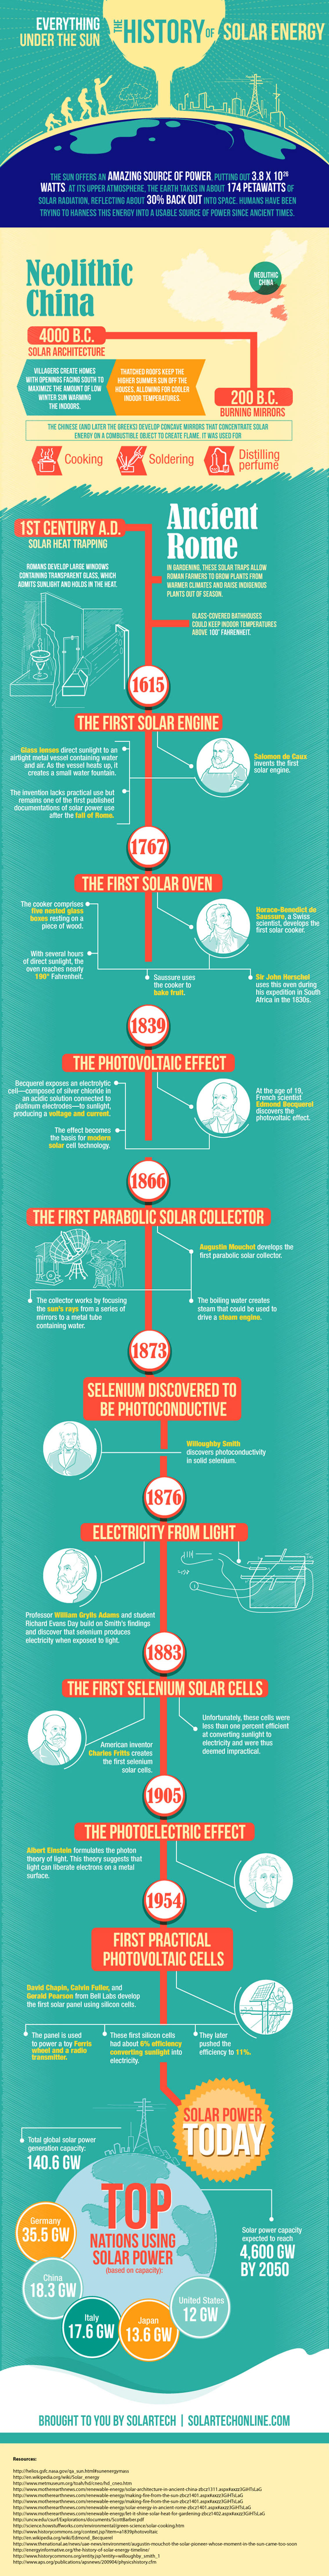 Infographic How Ancient Egypt Shaped the Modern World